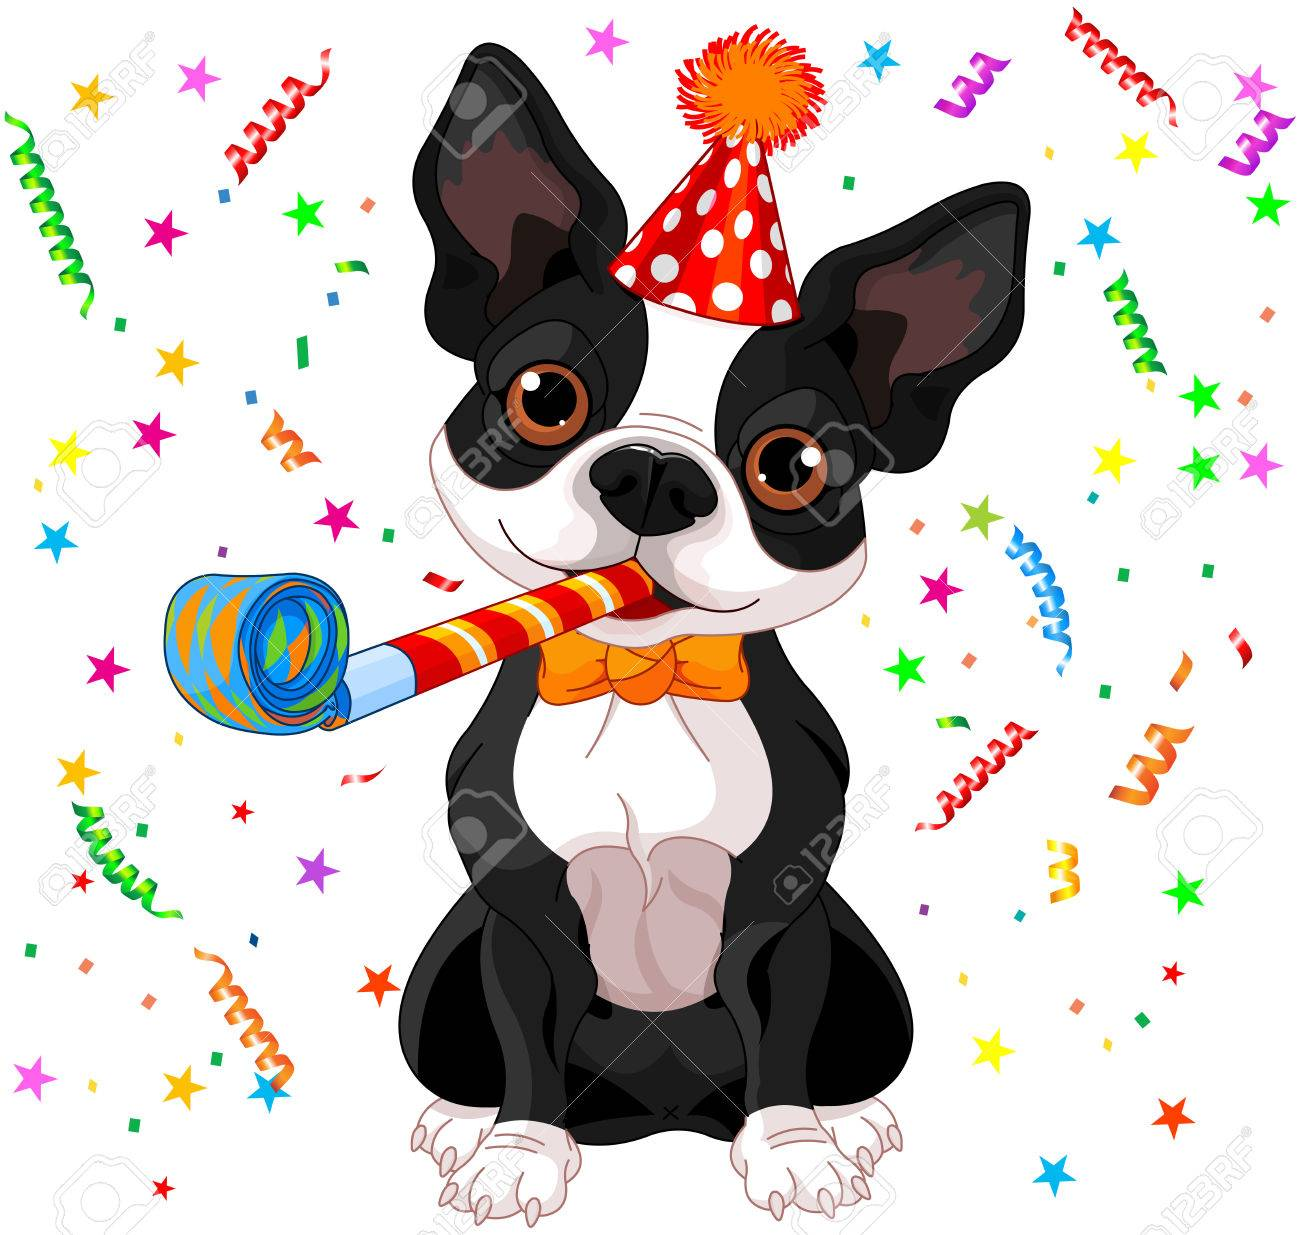 Les méthodes positives et amicales en éducation canine - Page 6 35588778-illustration-of-cute-boston-terrier-celebrating